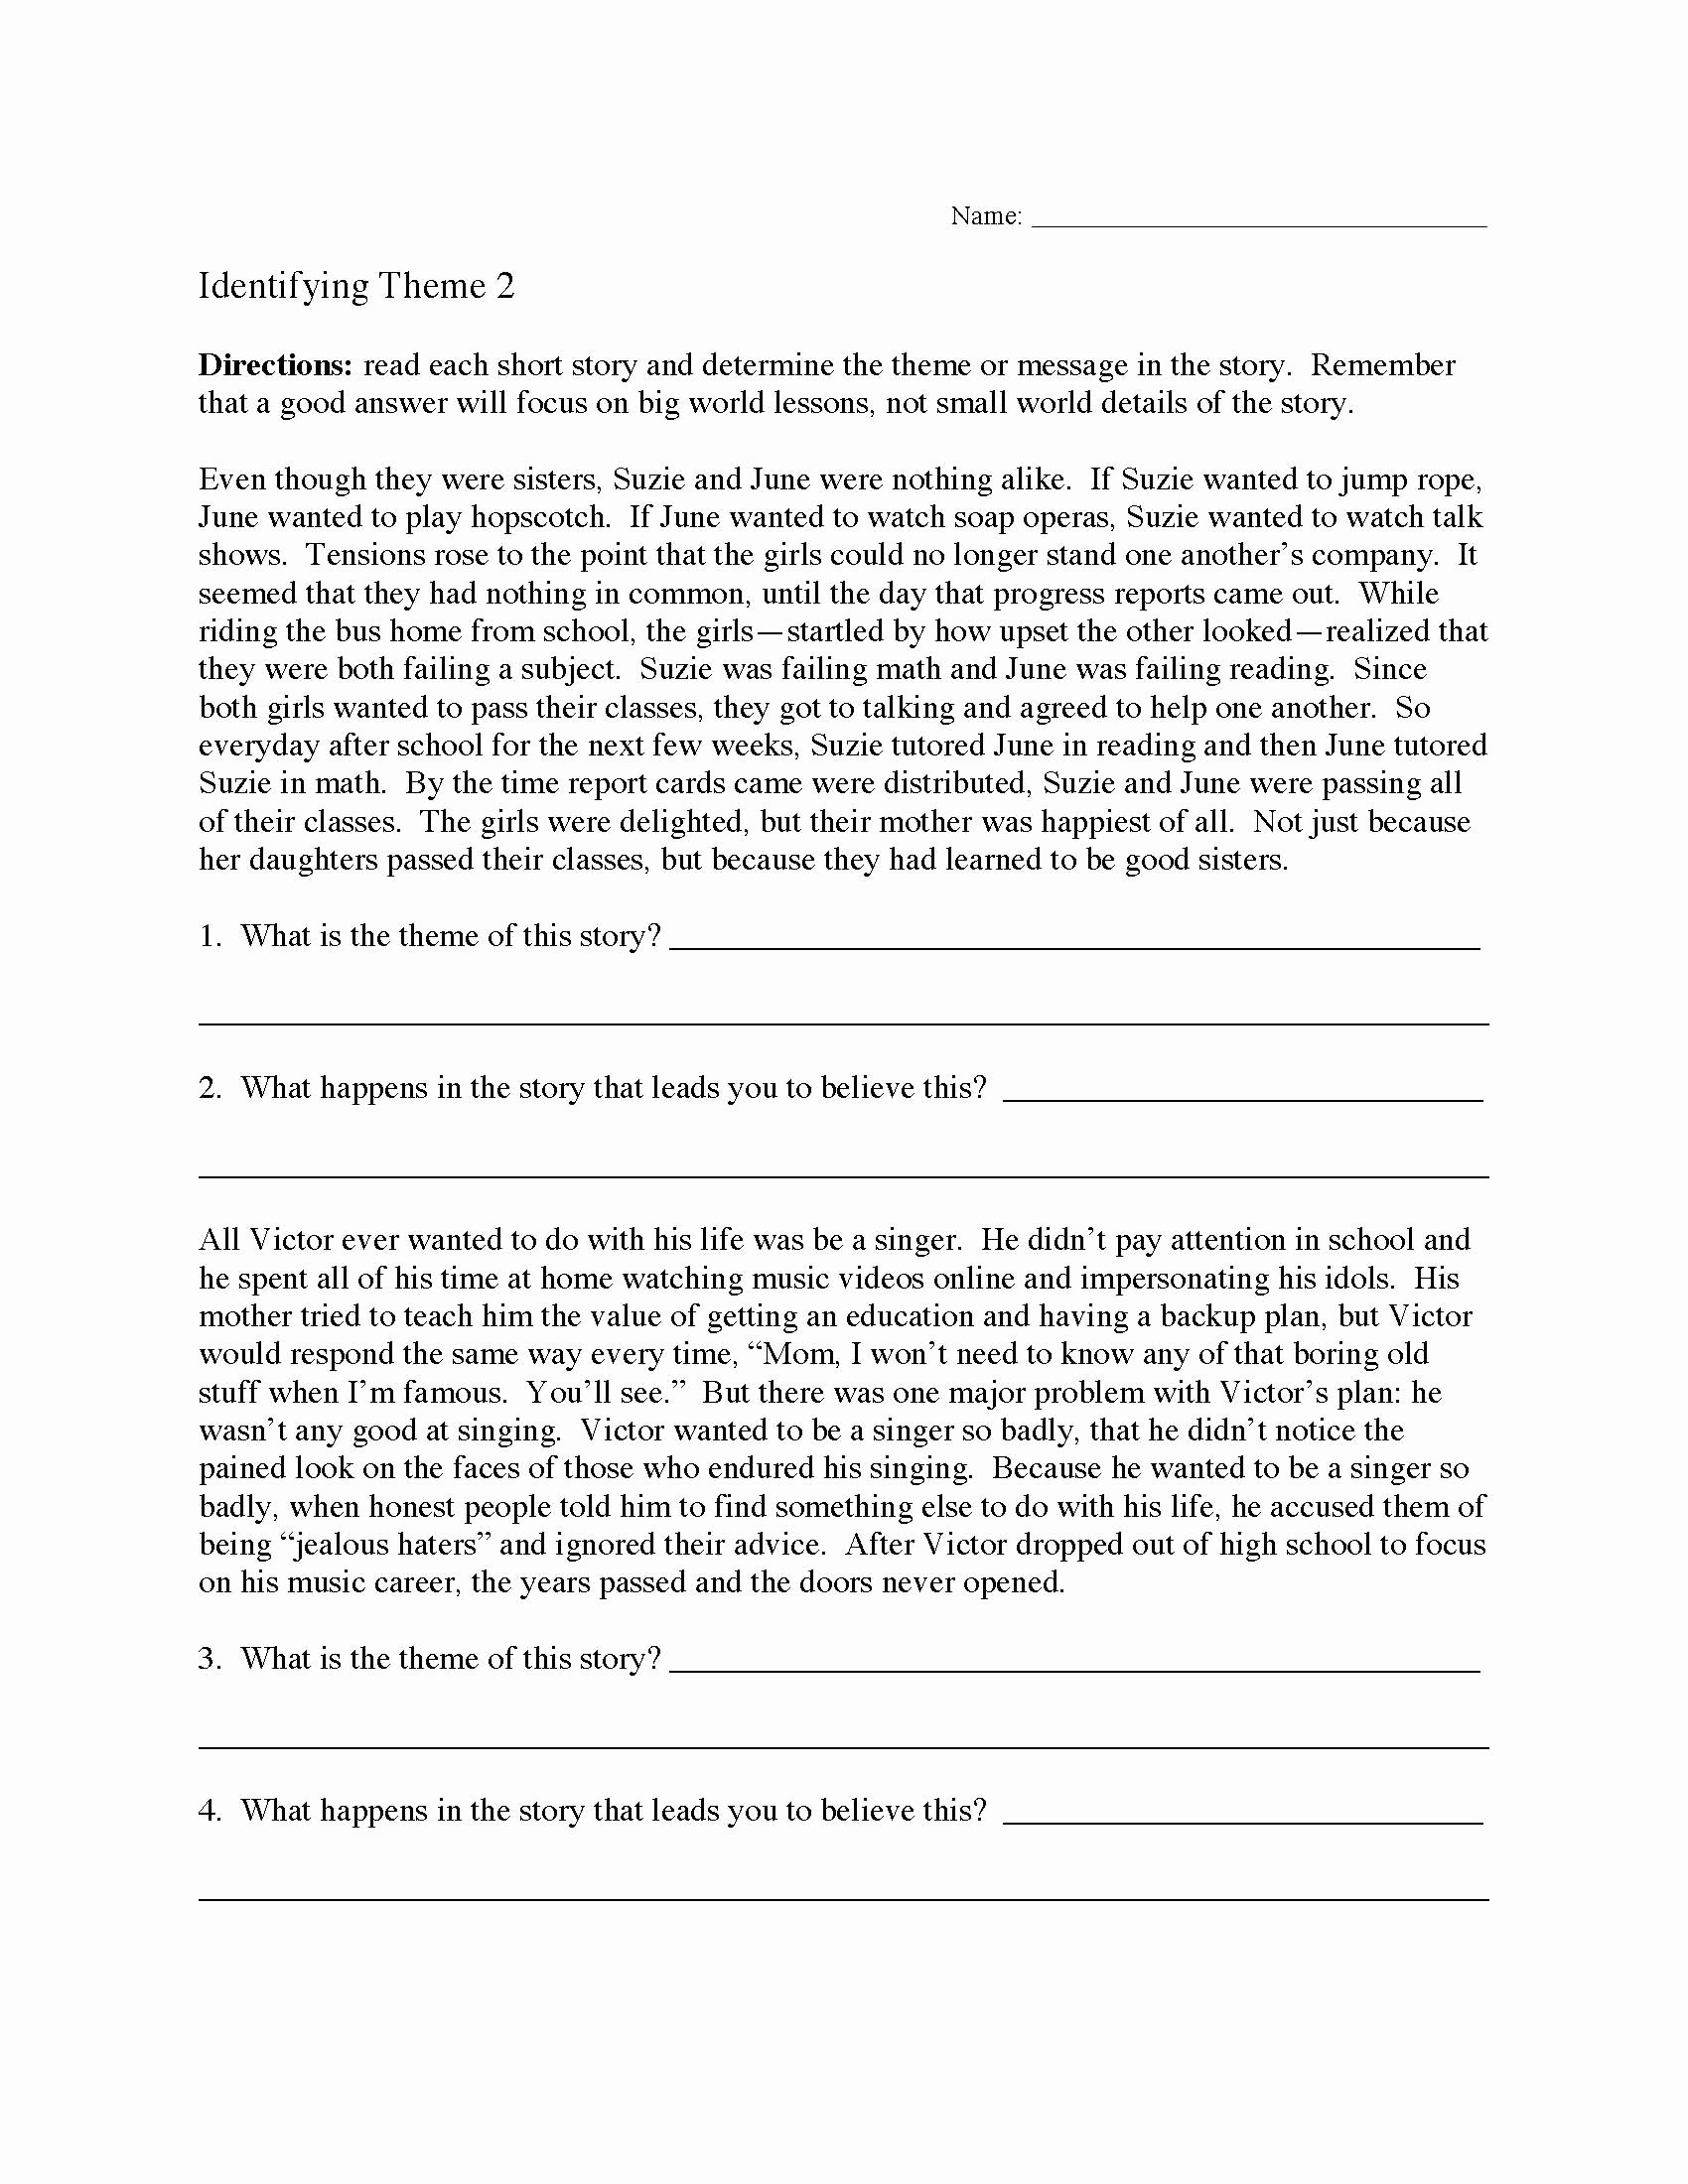 Main Idea and theme Worksheets top theme or Author S Message Worksheets